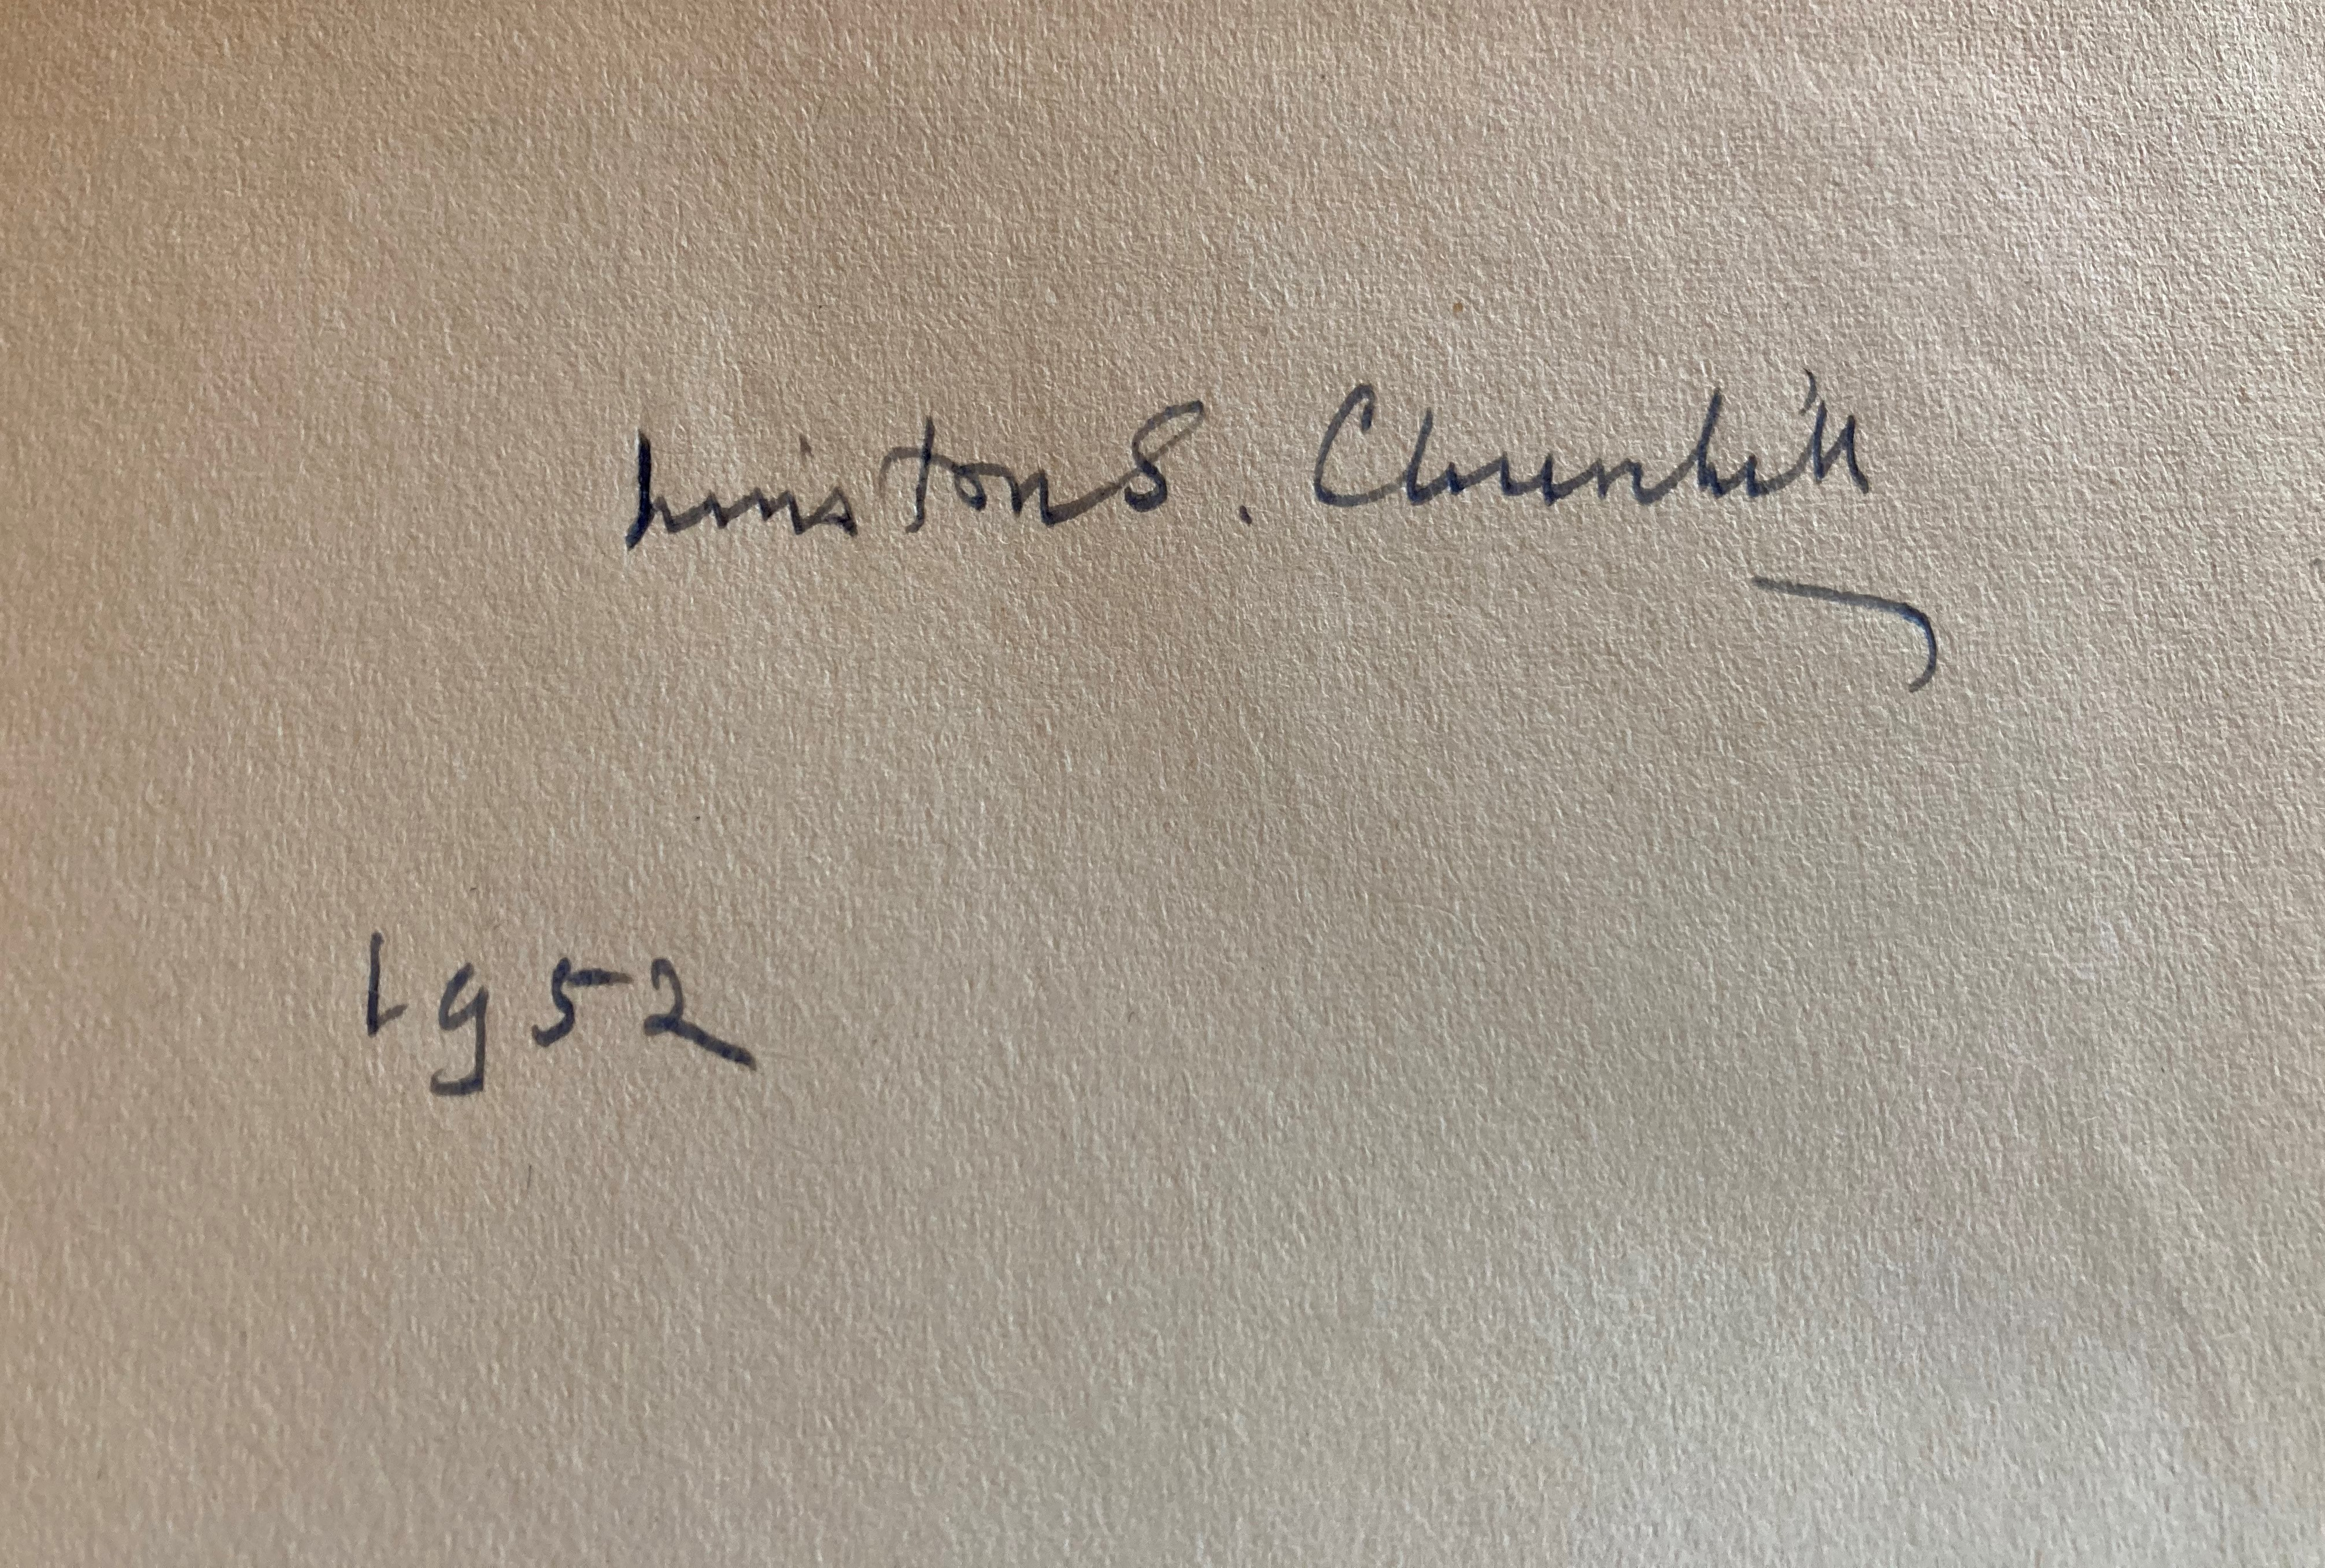 Signed by the Authorÿ Churchill (Winston S.)ÿTheir Finest Hour, Second World War, Vol. II only, - Image 4 of 22